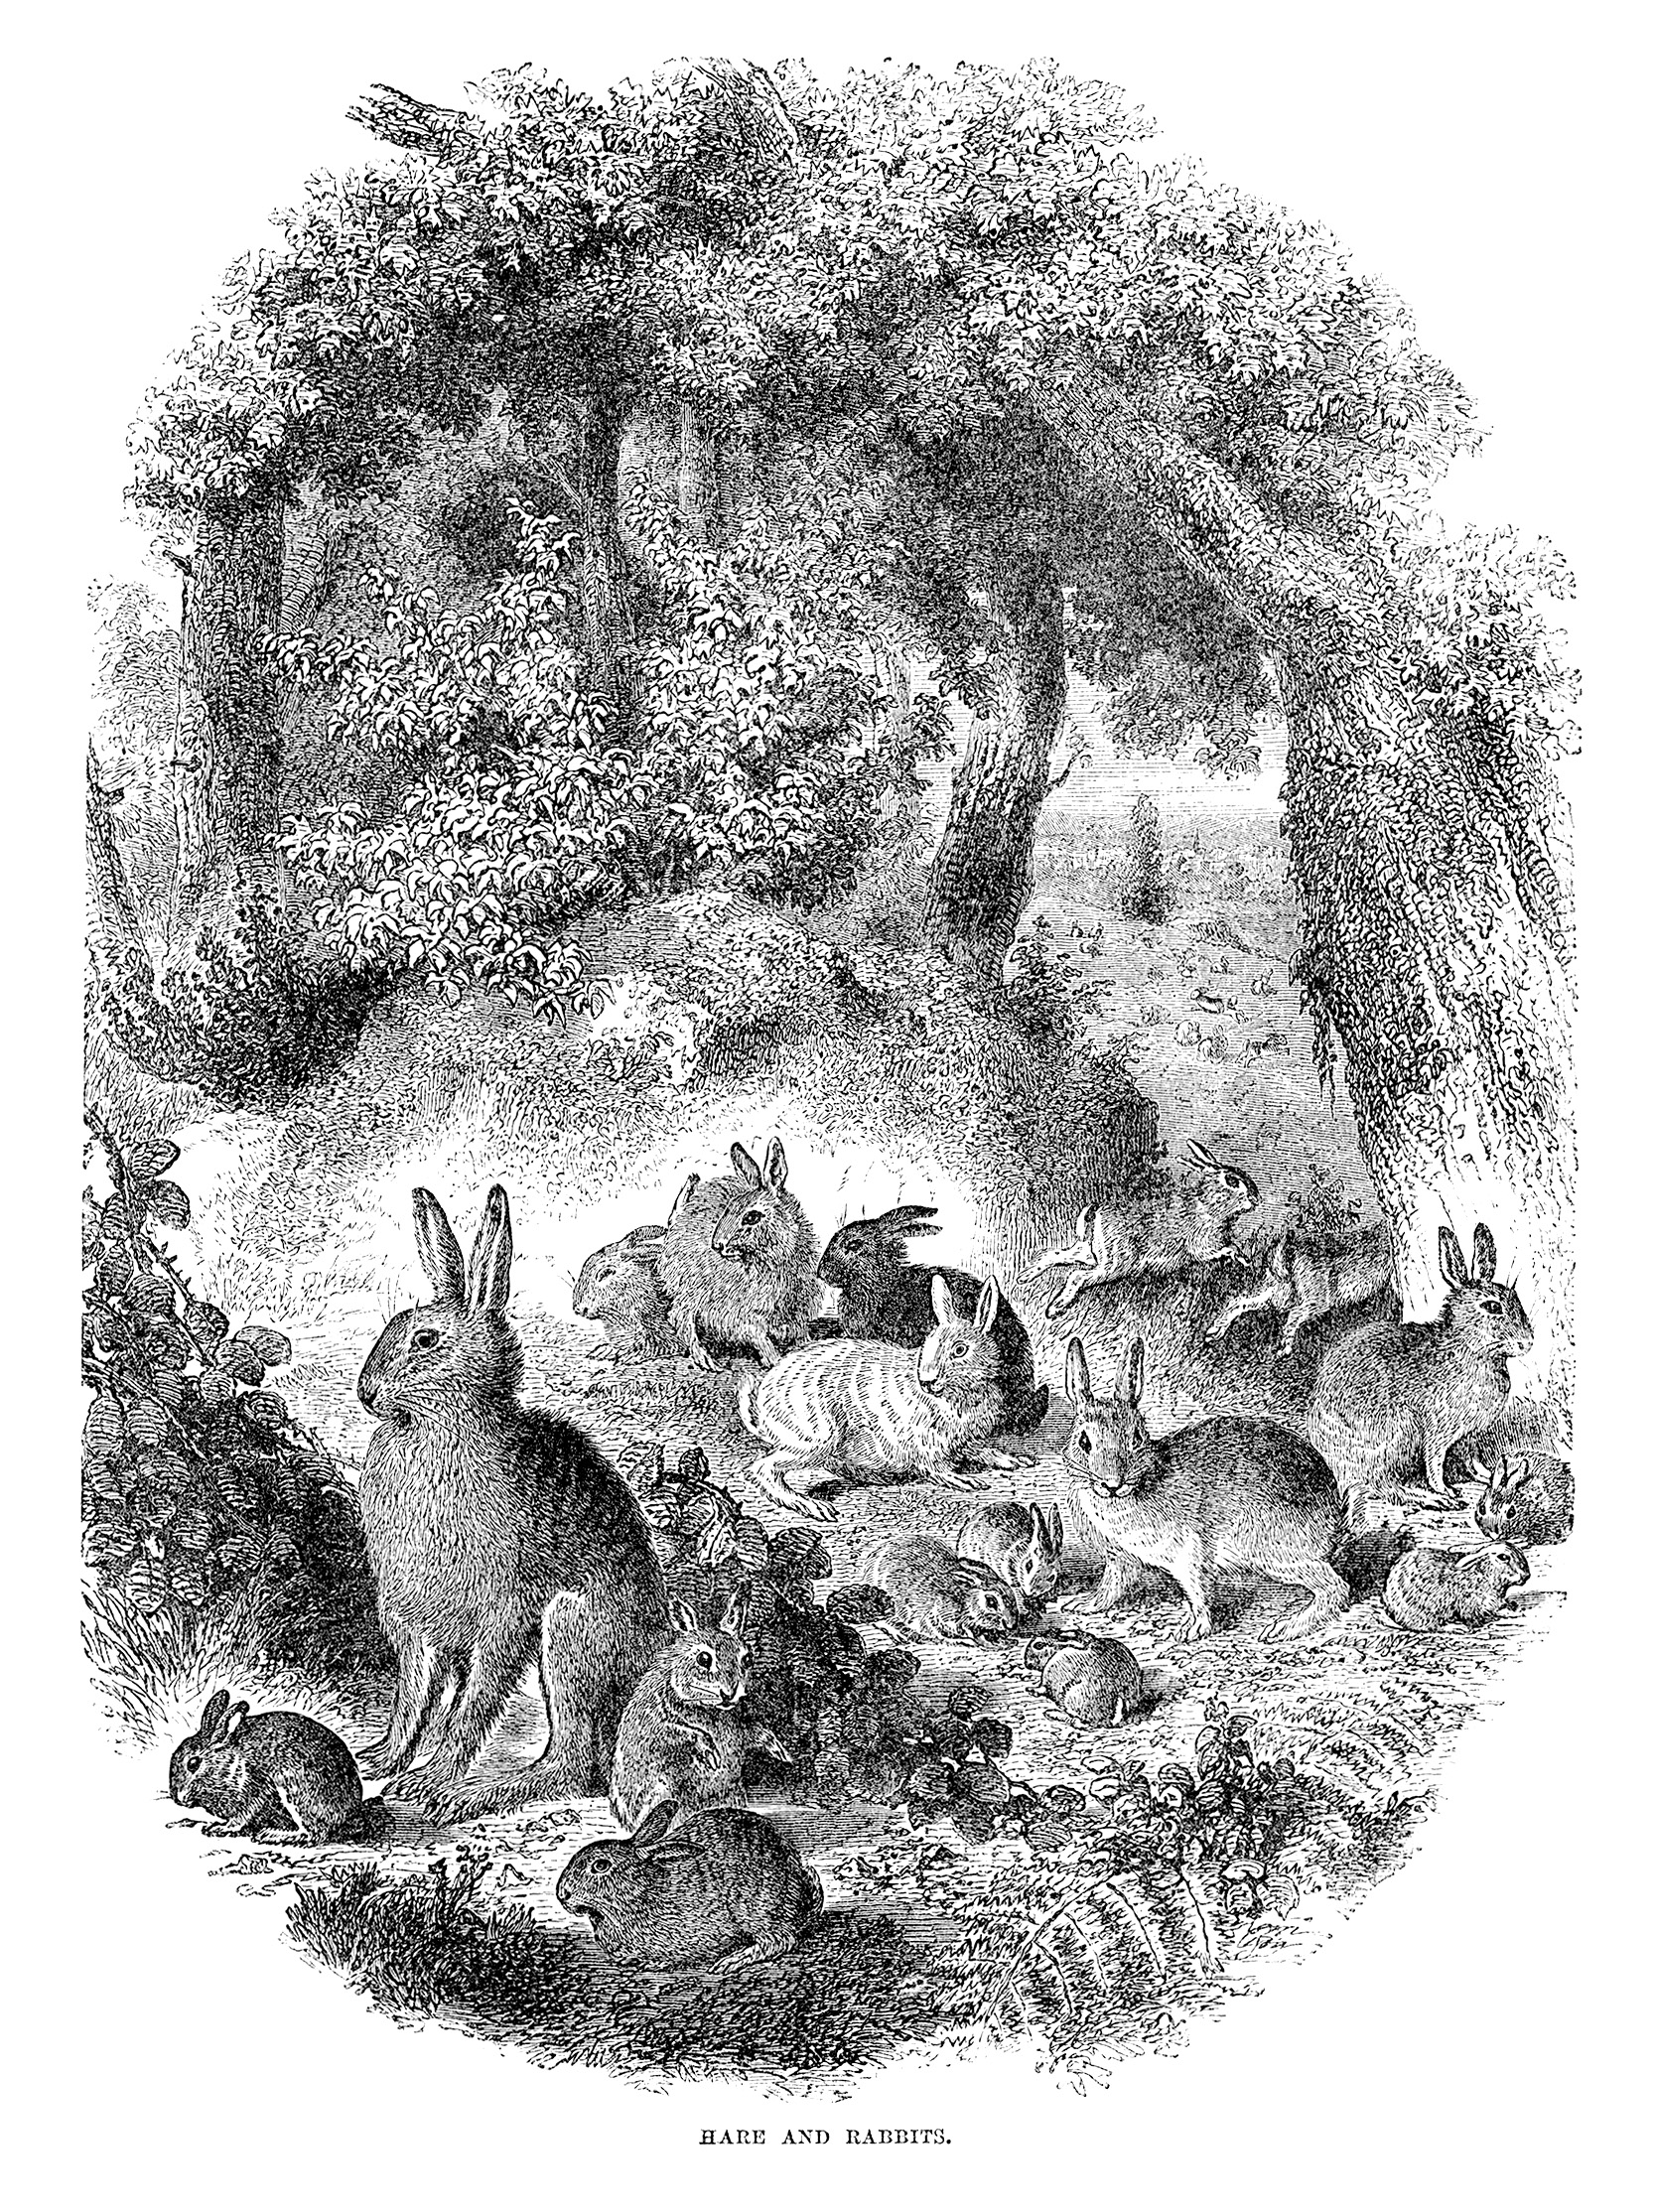 hare and rabbits free vintage printable illustration